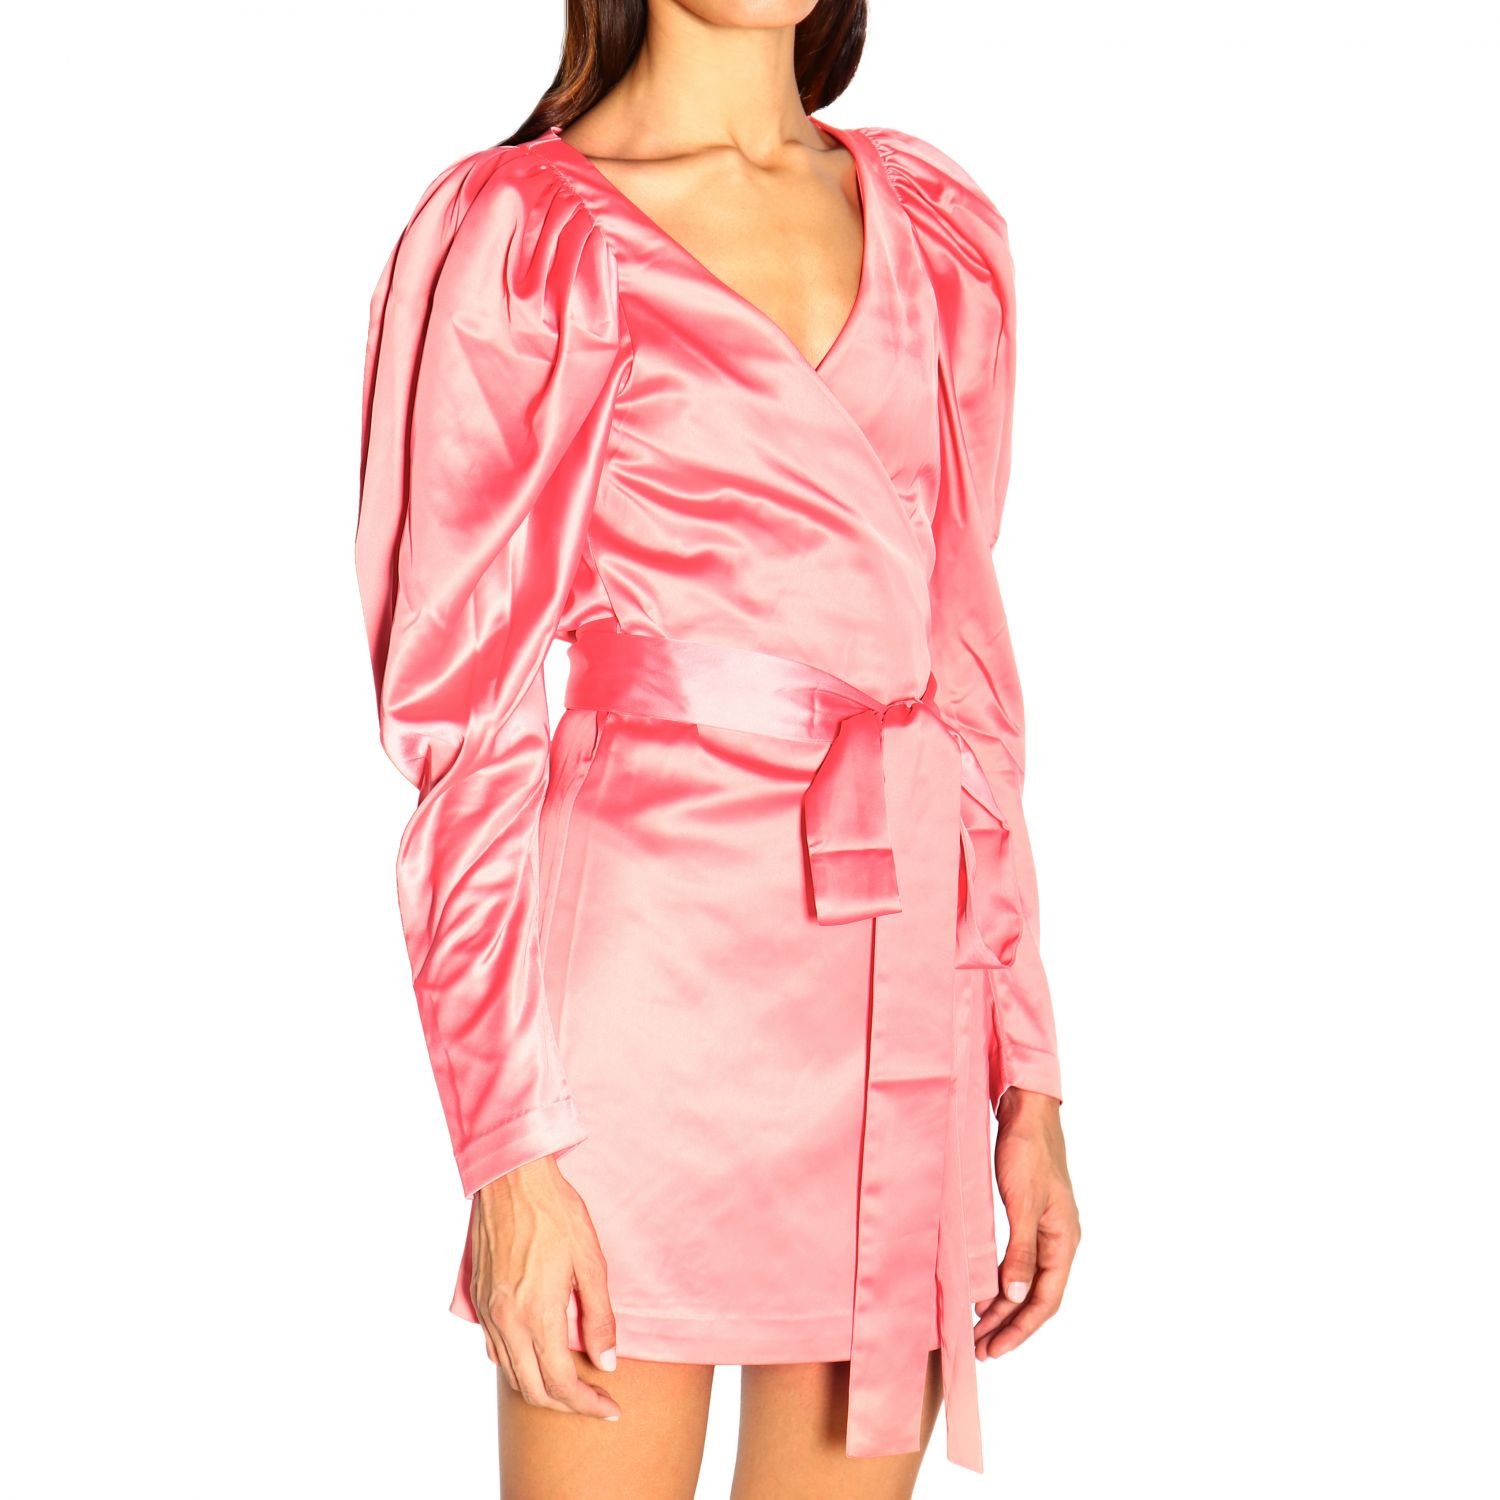 Robes femme Rotate rose 4